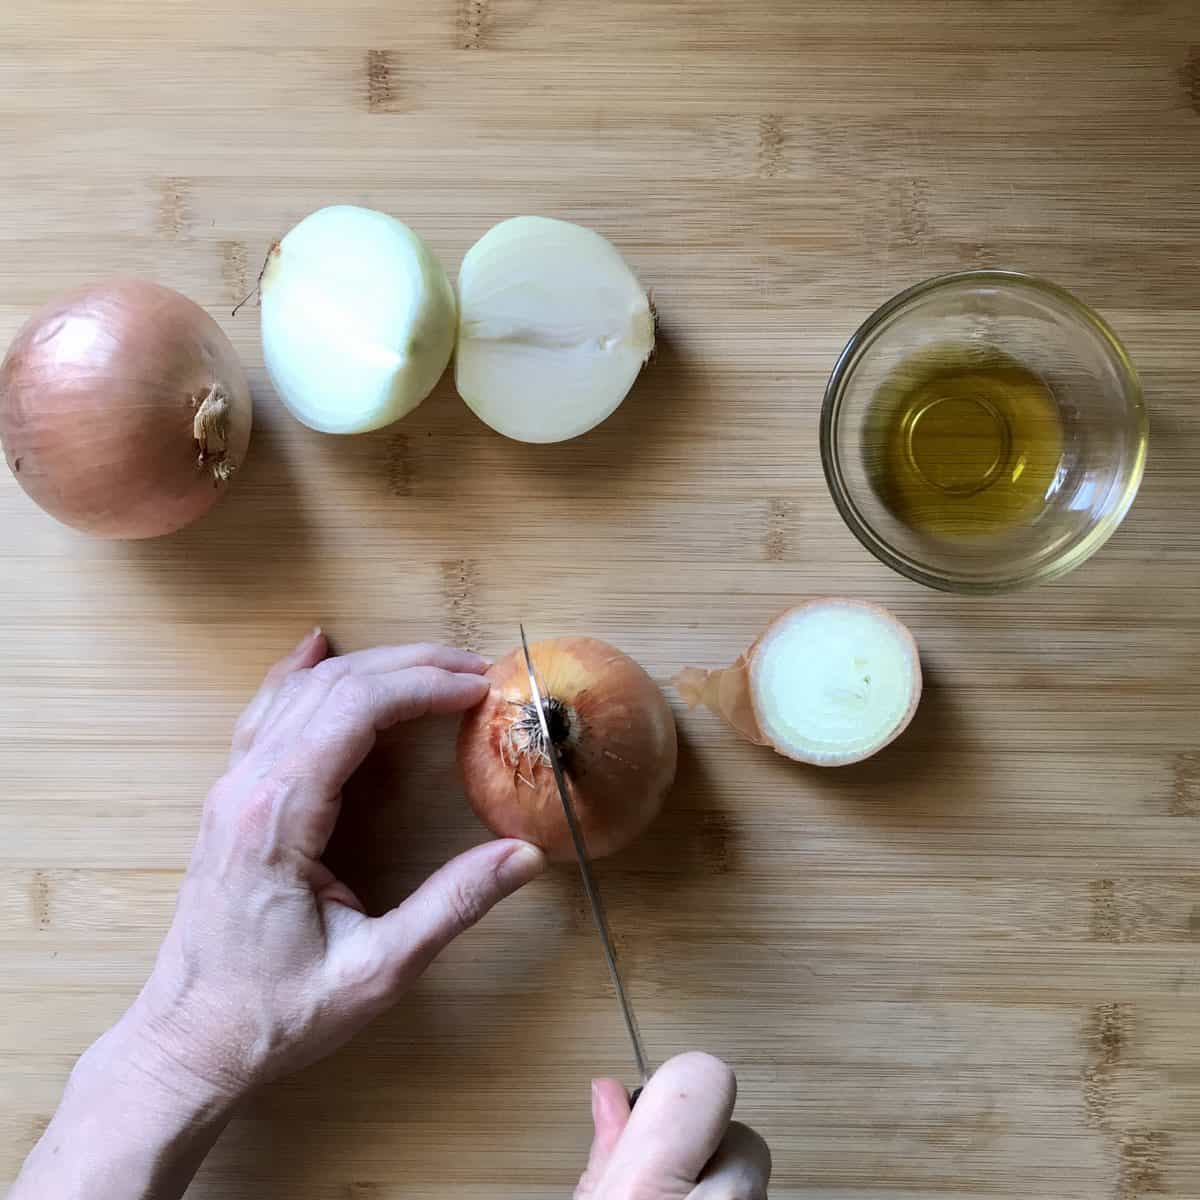 An onion being sliced through the root.